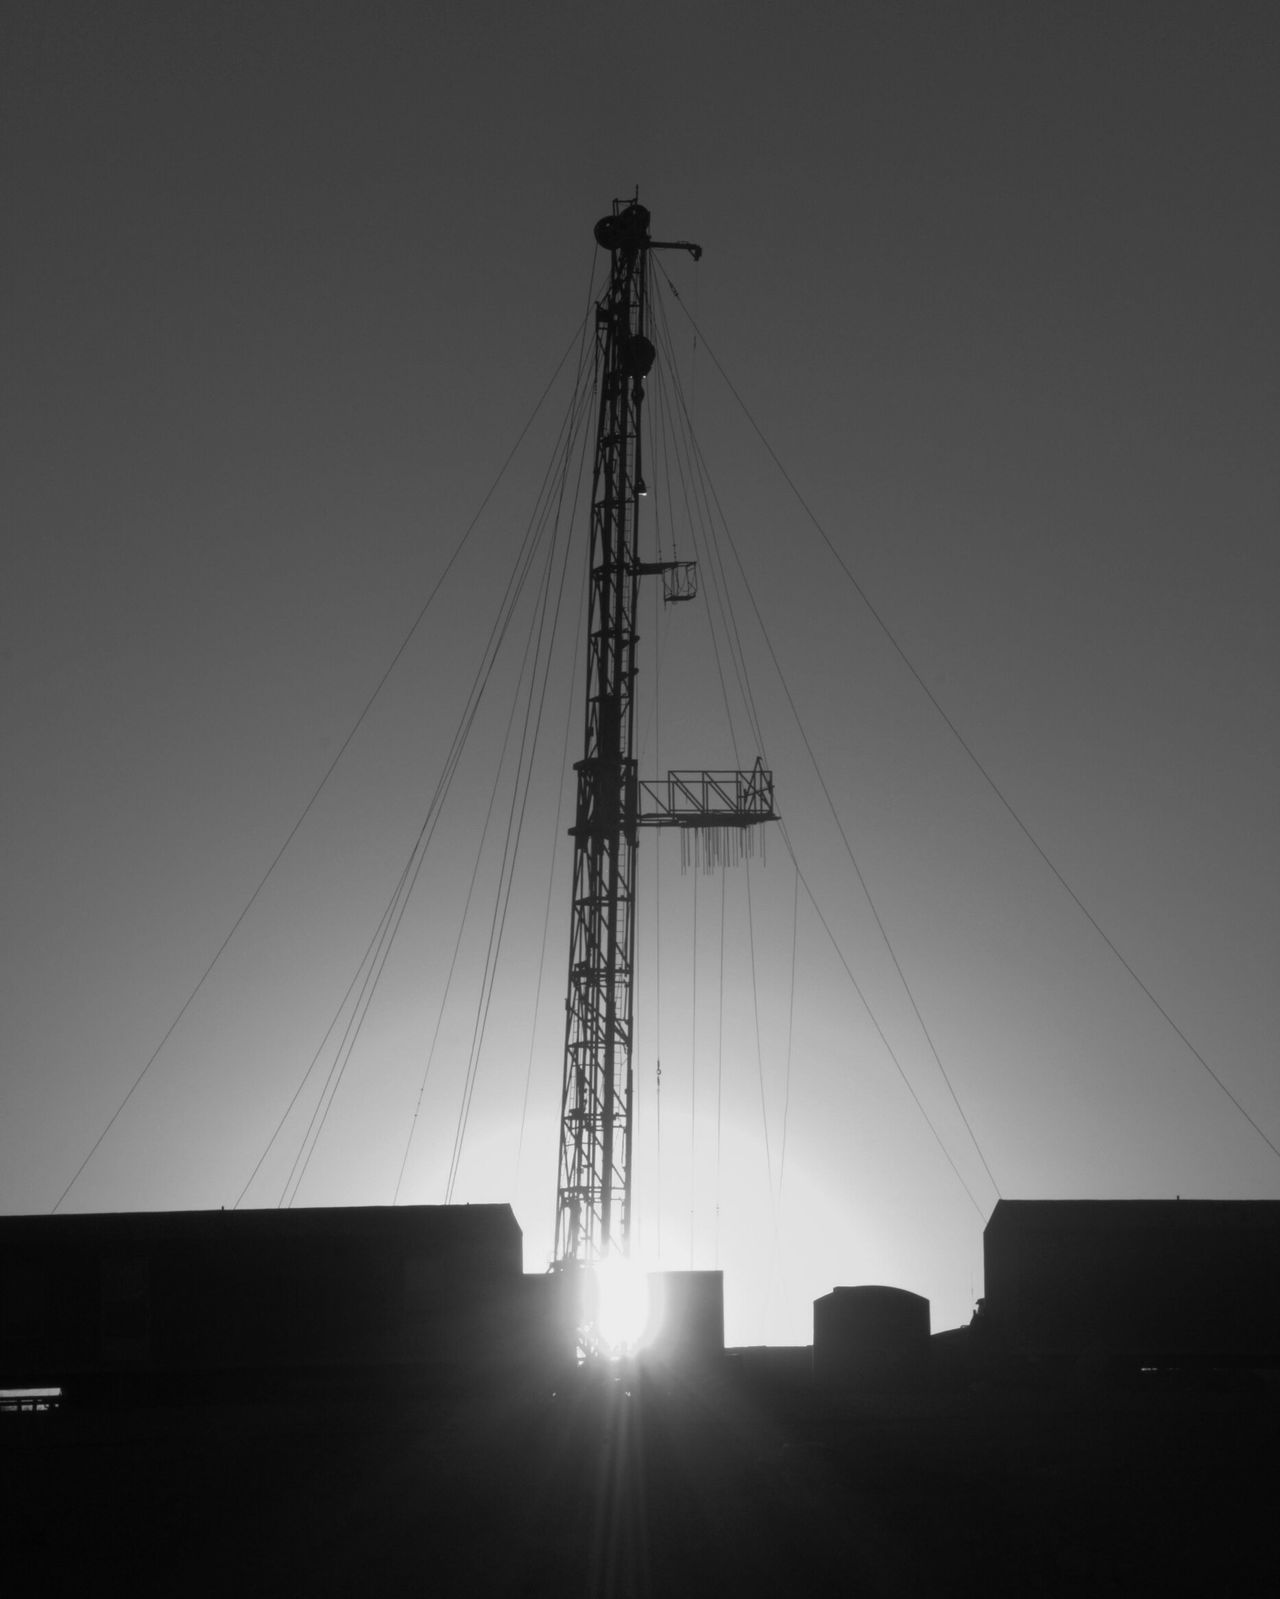 Sky City Development Silhouette Construction Site Electricity Pylon Industry Built Structure No People Outdoors Business Finance And Industry Day Black&white Blackandwhite Black And White Collection! Eyeemphotography Black & White Photography This Week On Eyeem Blackandwhite Photography EyeEm Gallery Texas Photographer